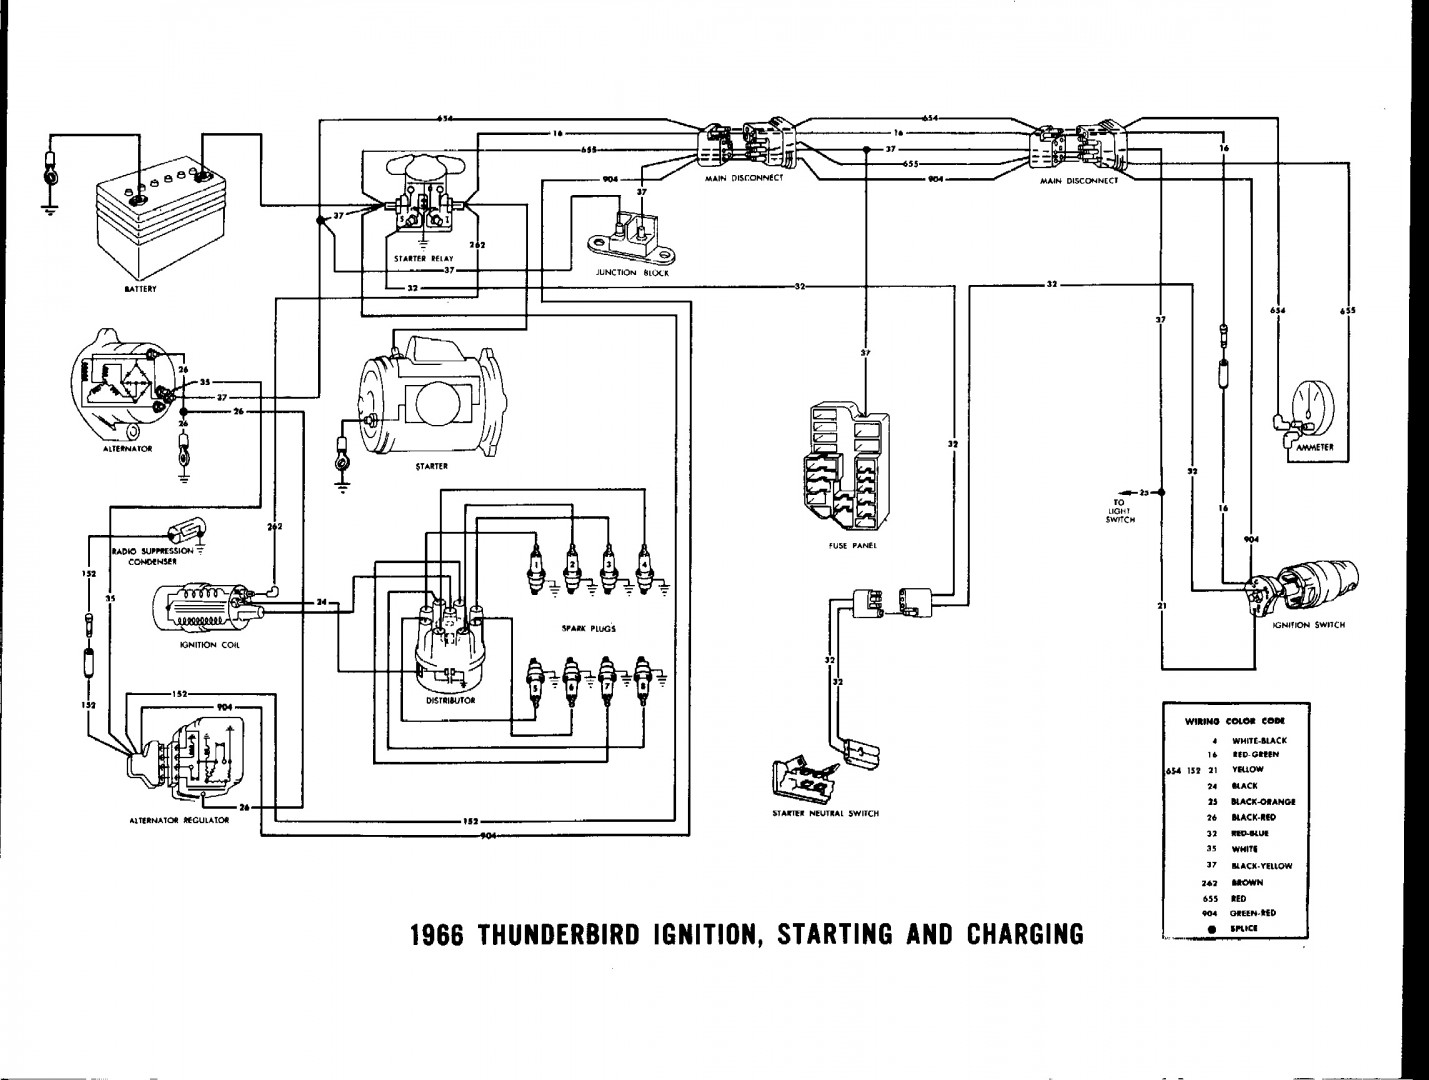 hight resolution of 1966 thunderbird iginition diagram